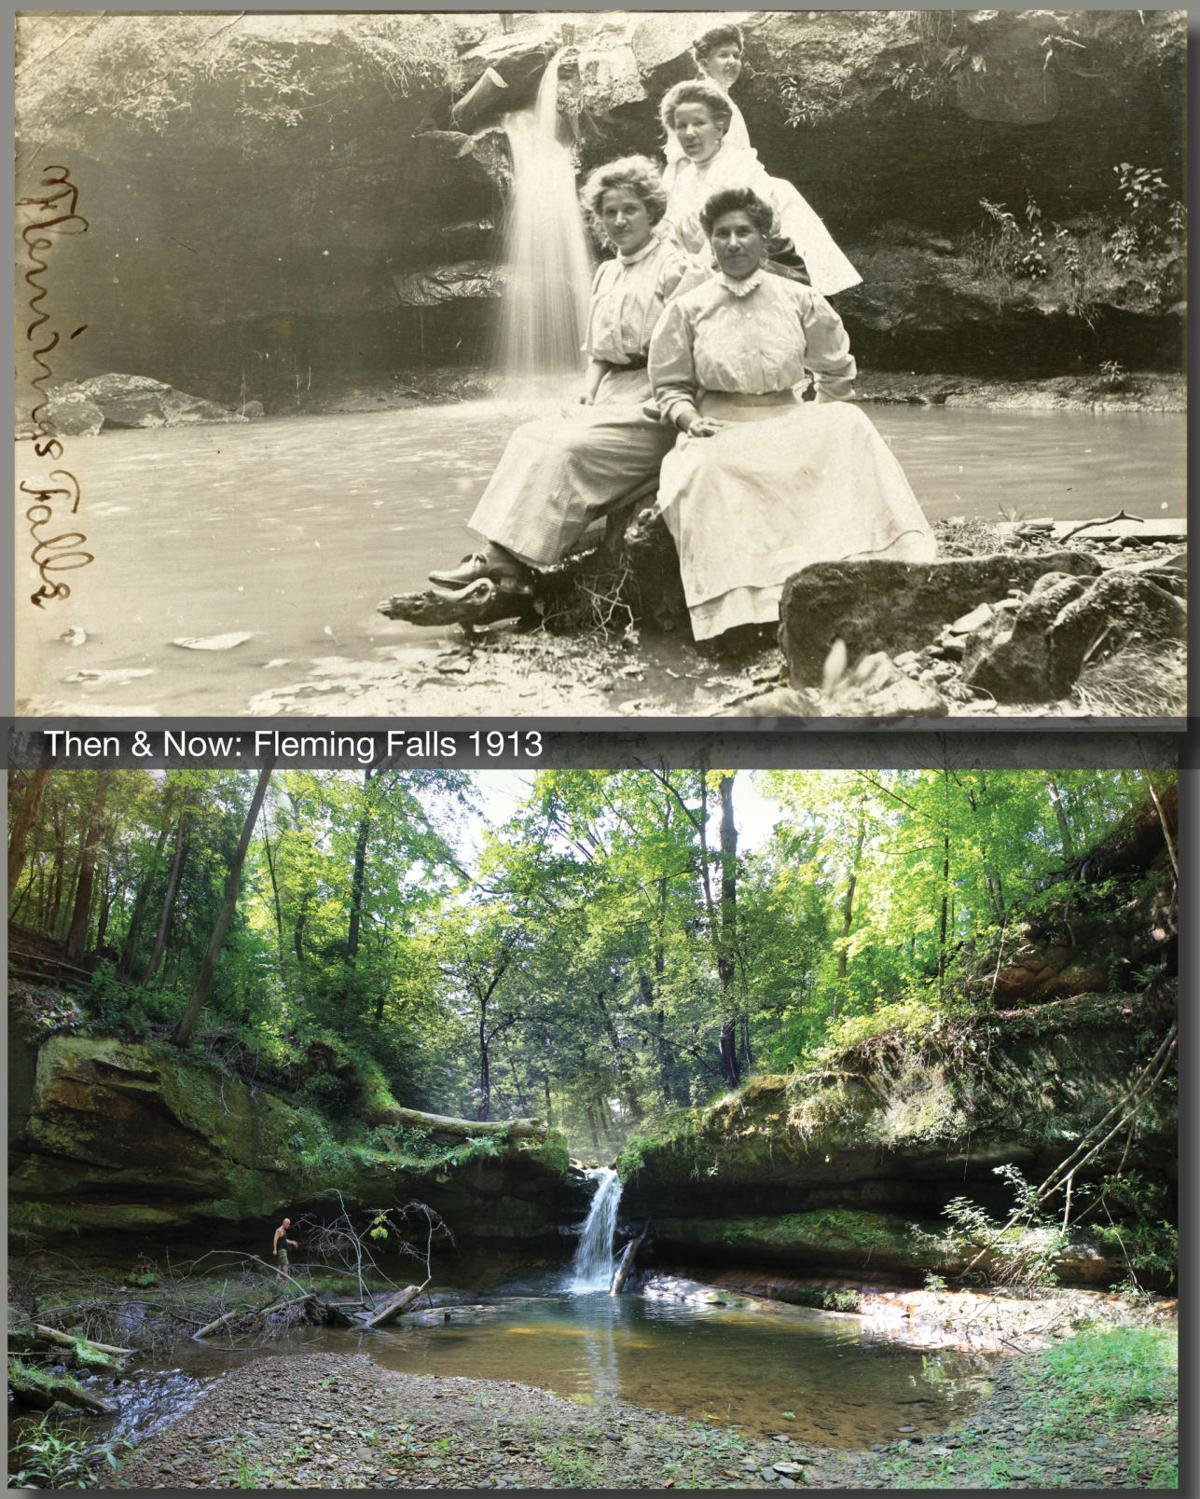 Then & Now: Fleming Falls 1913